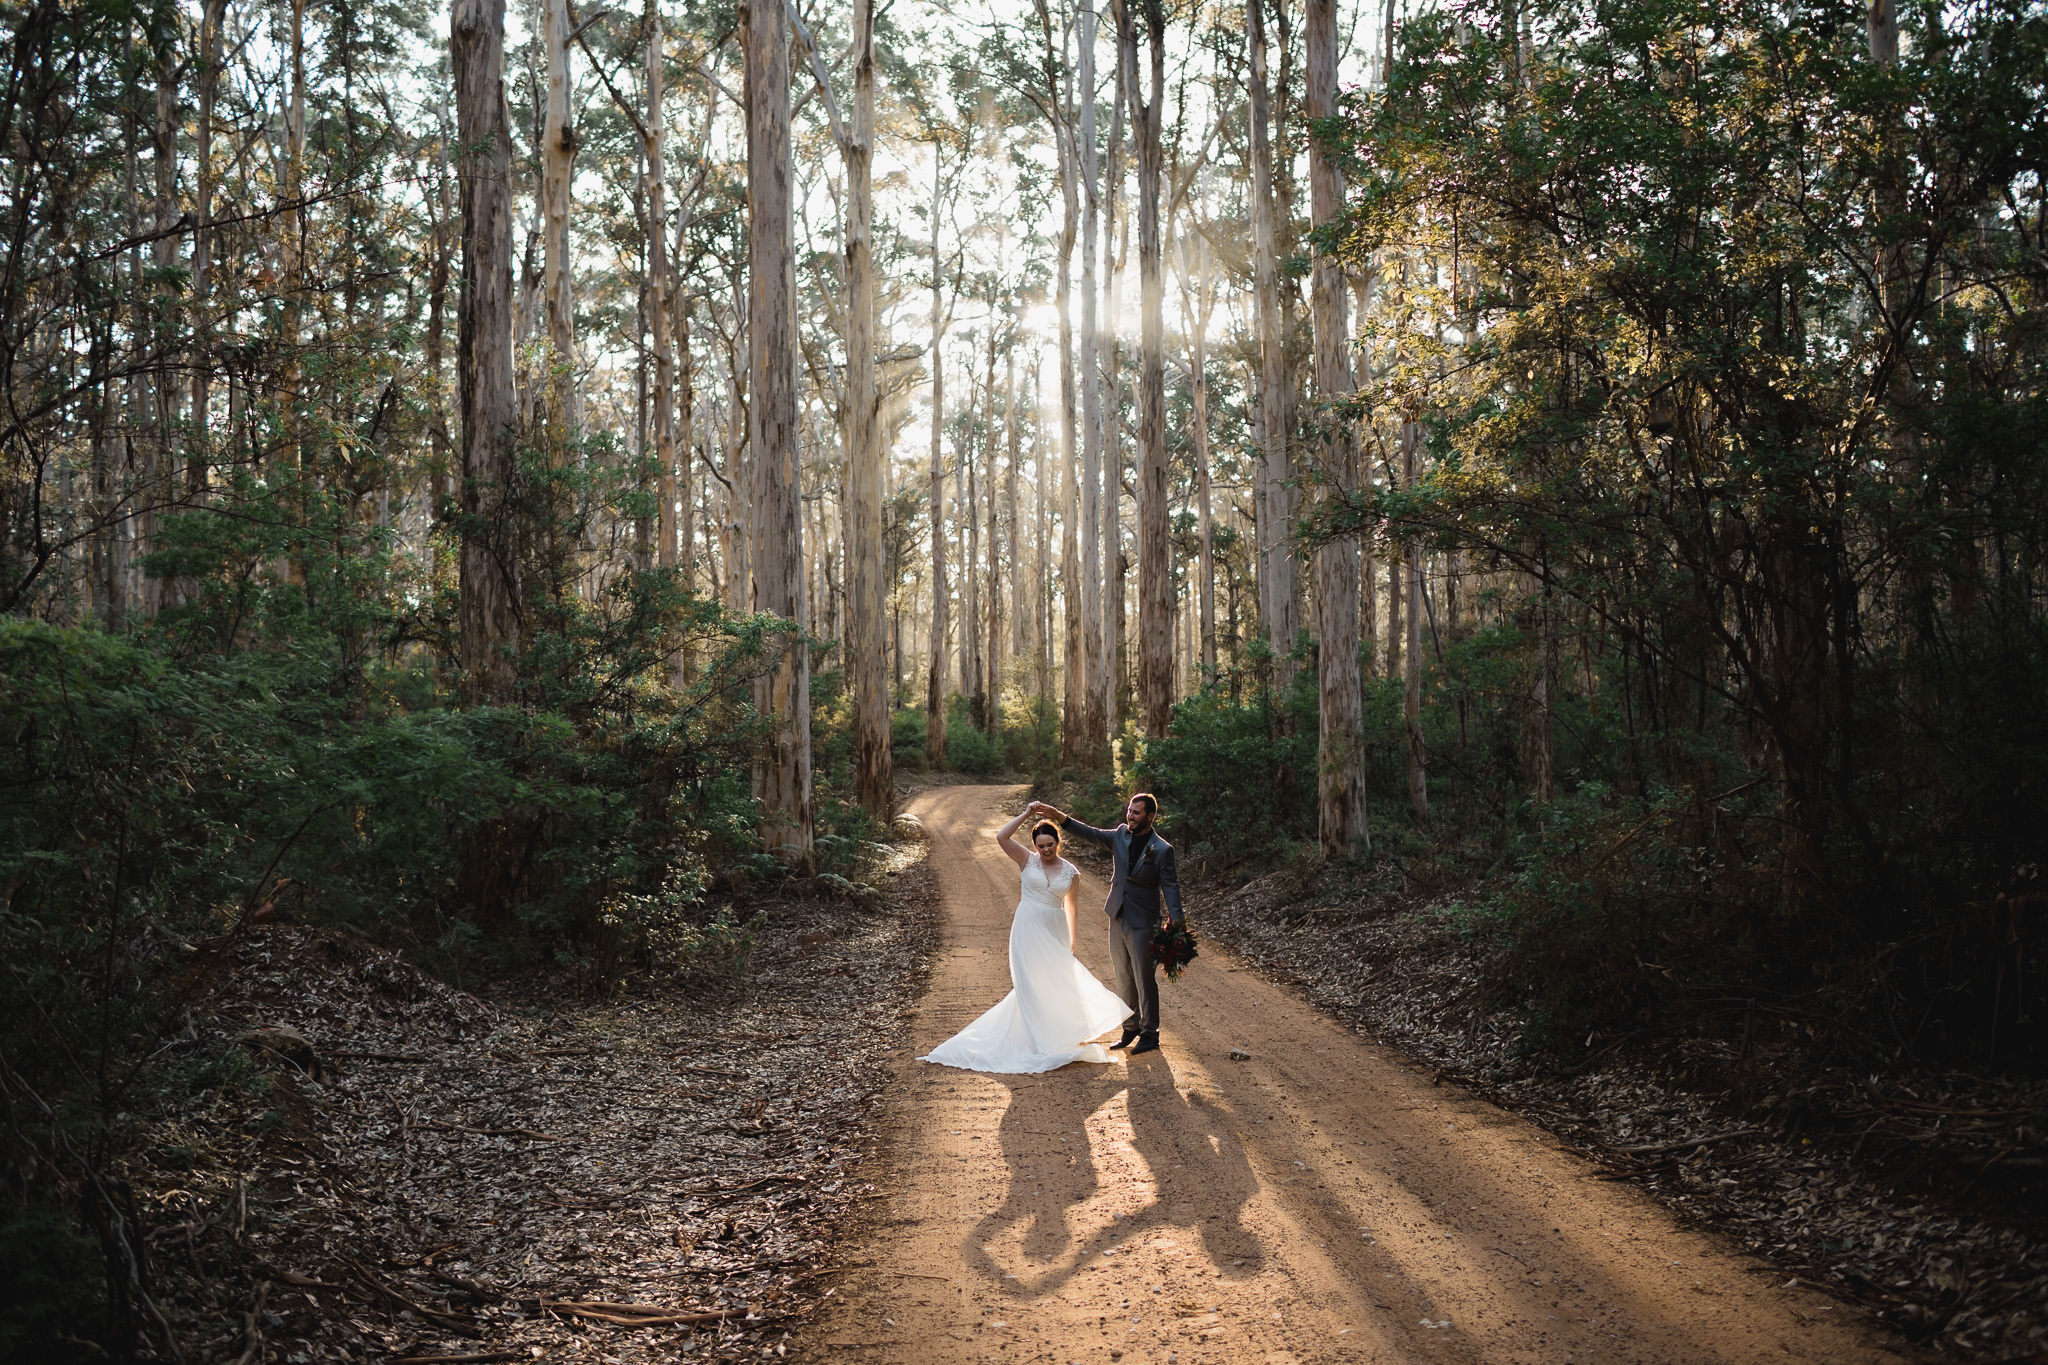 groom spinning bride as she dances at their Boranup forest elopement